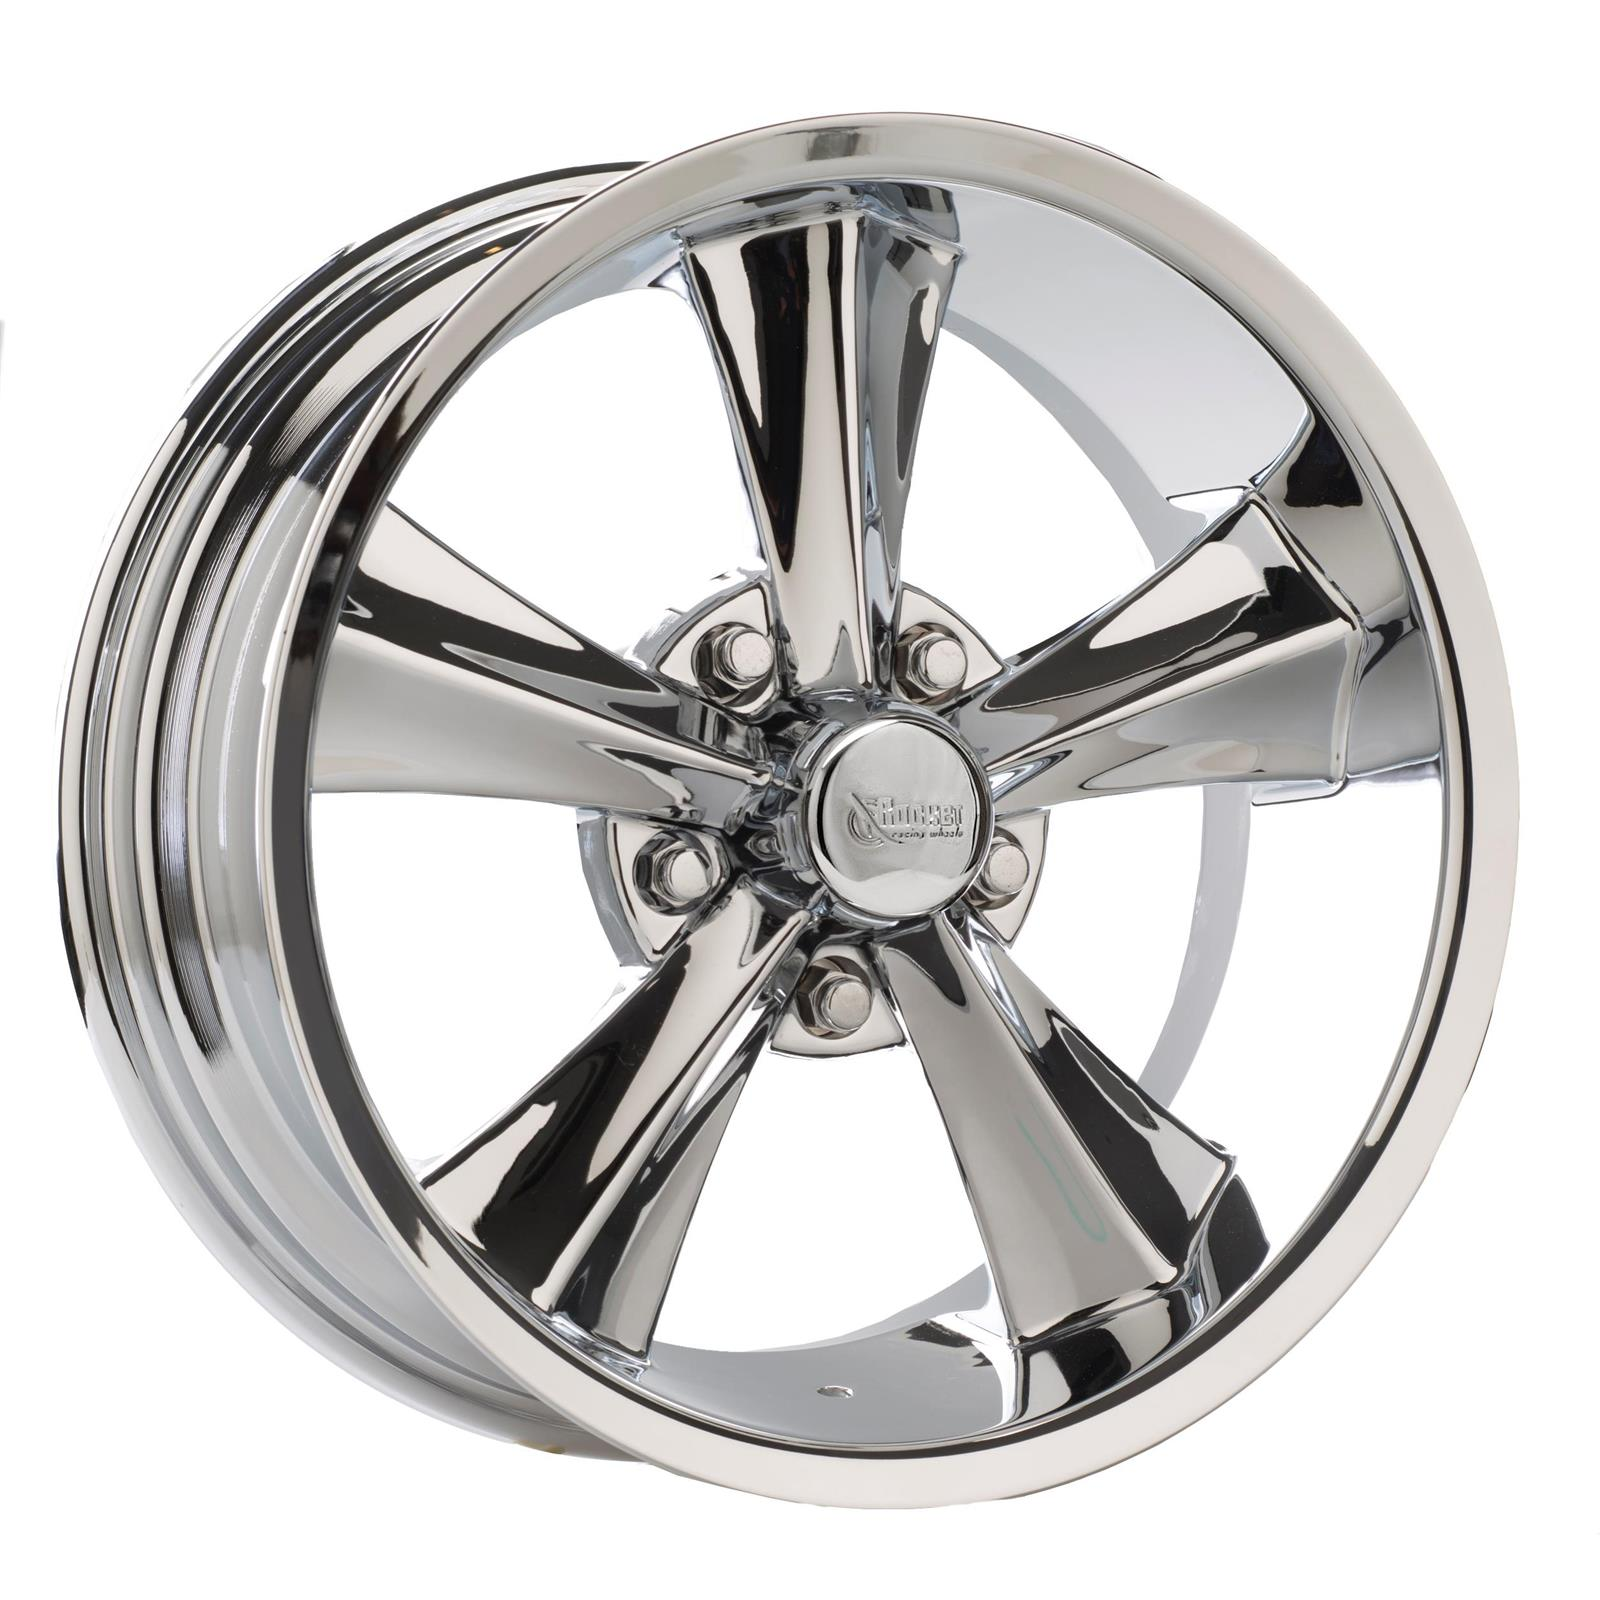 Rocket Racing R14-776542 Booster  17x7 Wheel, 5x4-1/2, 4-1/4 BS